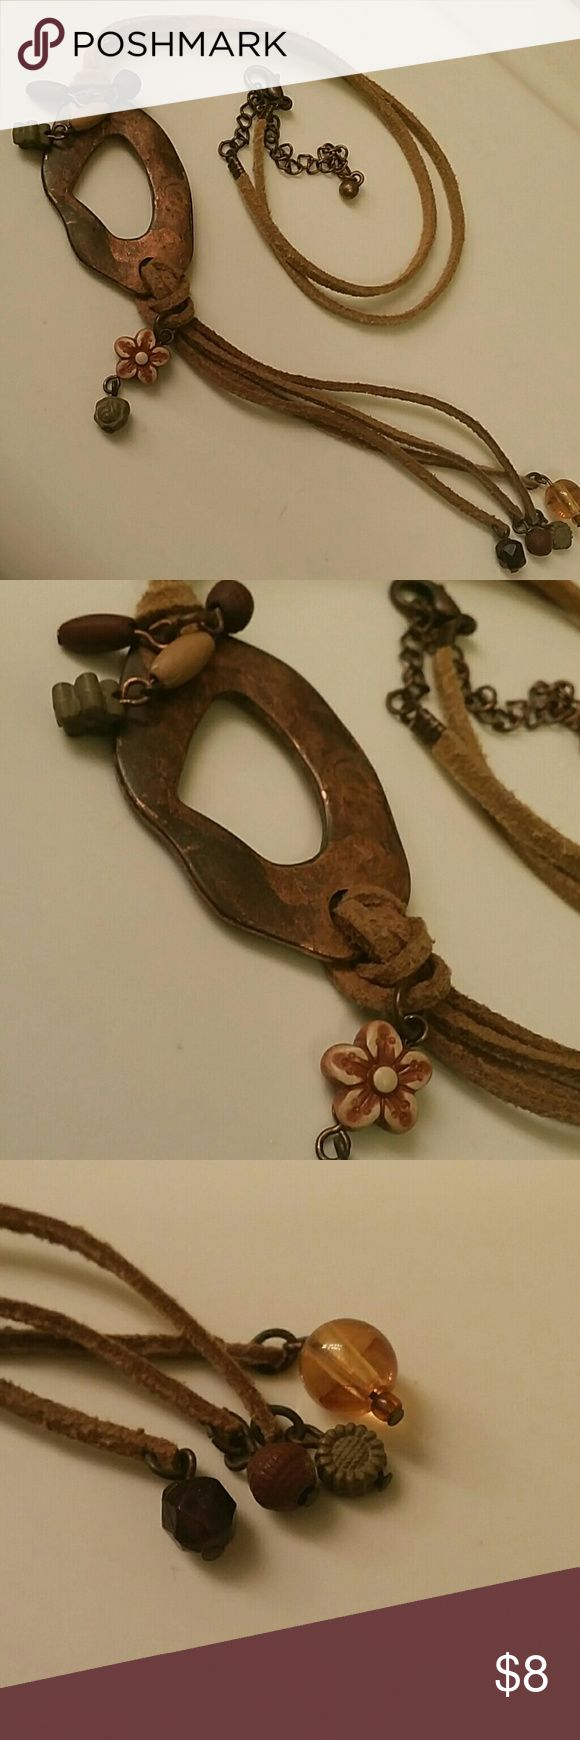 Cute Bead Flower Accent Necklace Brown Bead Flower Accent Necklace Jewelry Necklaces